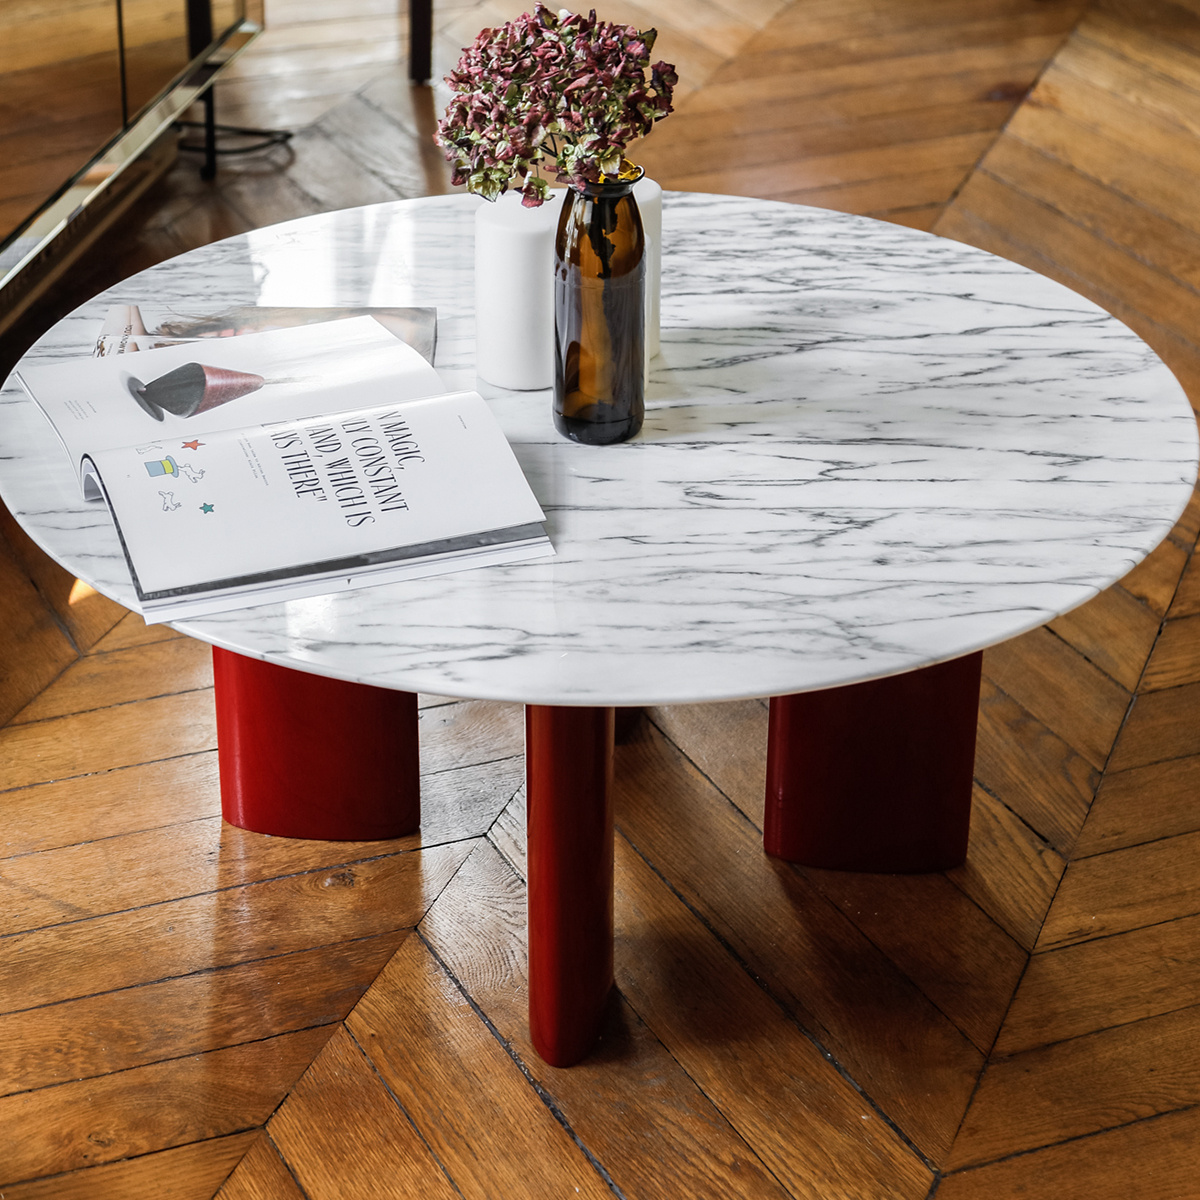 Carlotta Coffee Table White Marble Top And Red Legs